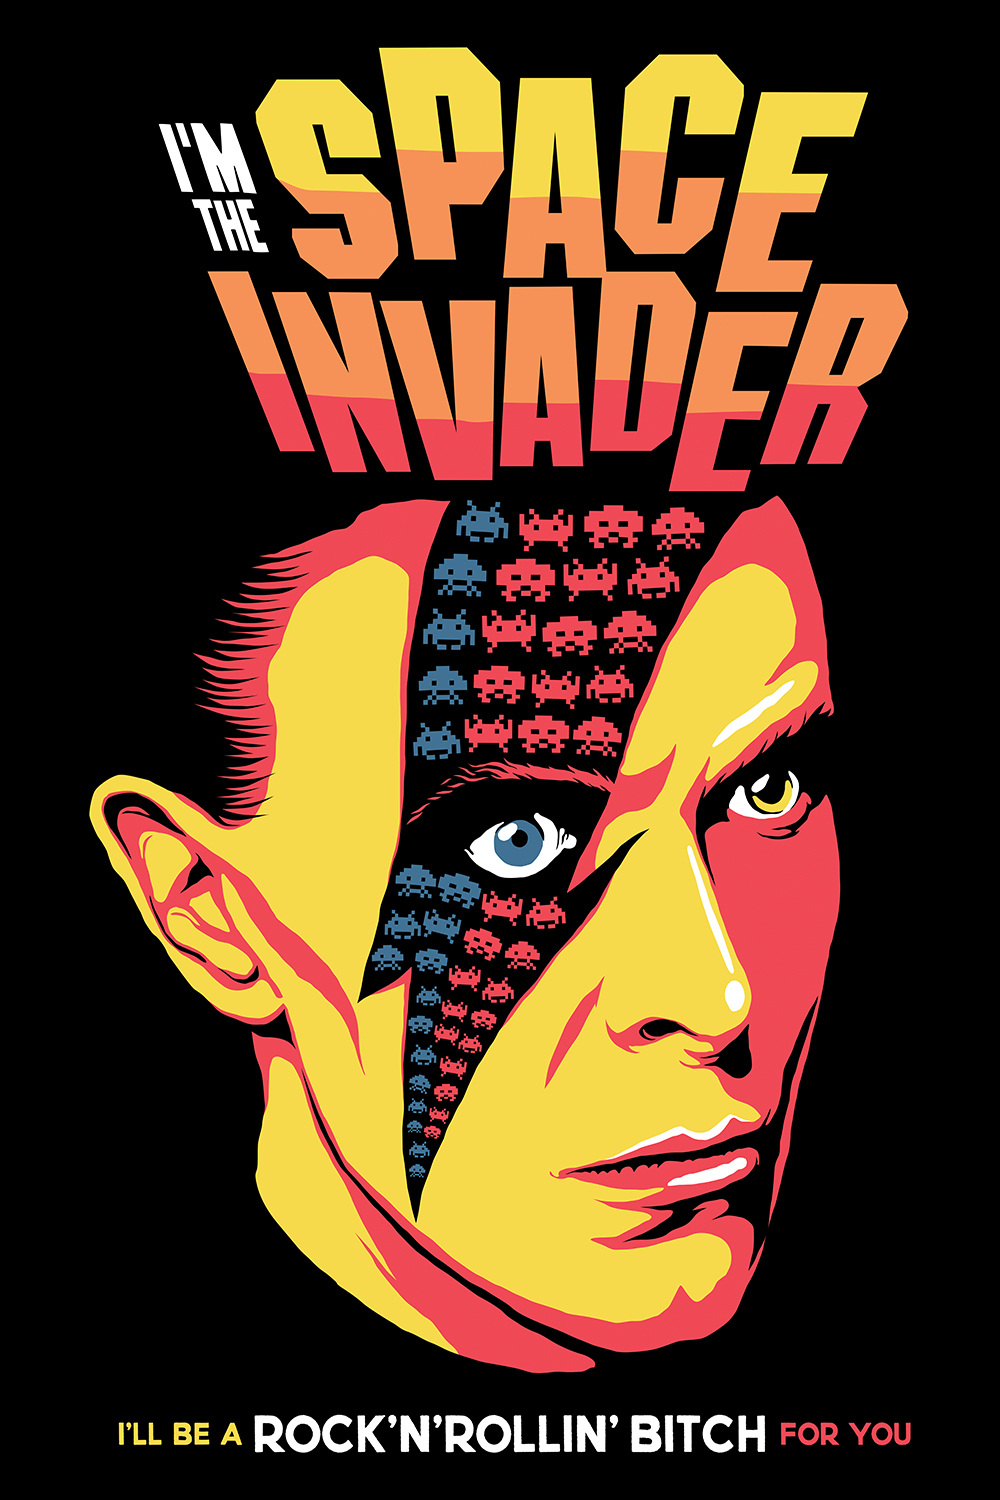 a poster using imagery from the game space invader using david bowie's face